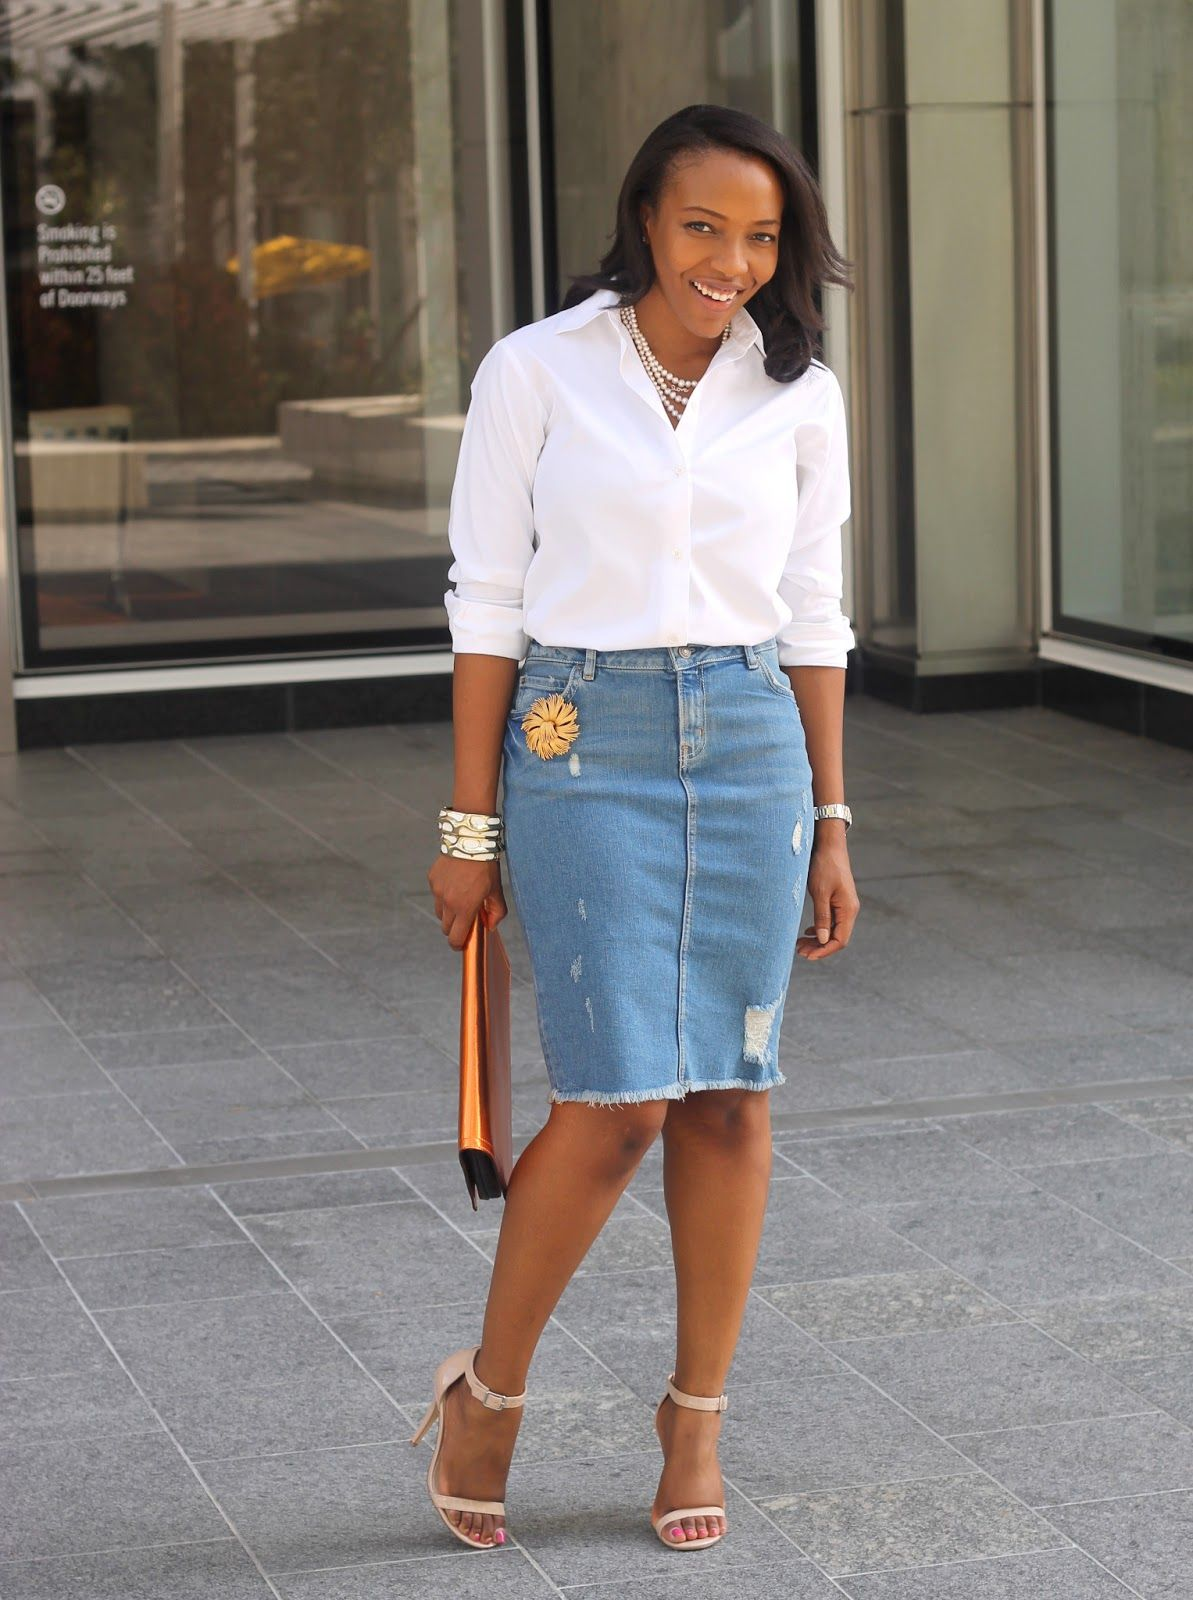 denim skirt outfits - Google Search | fashion & accesories ...